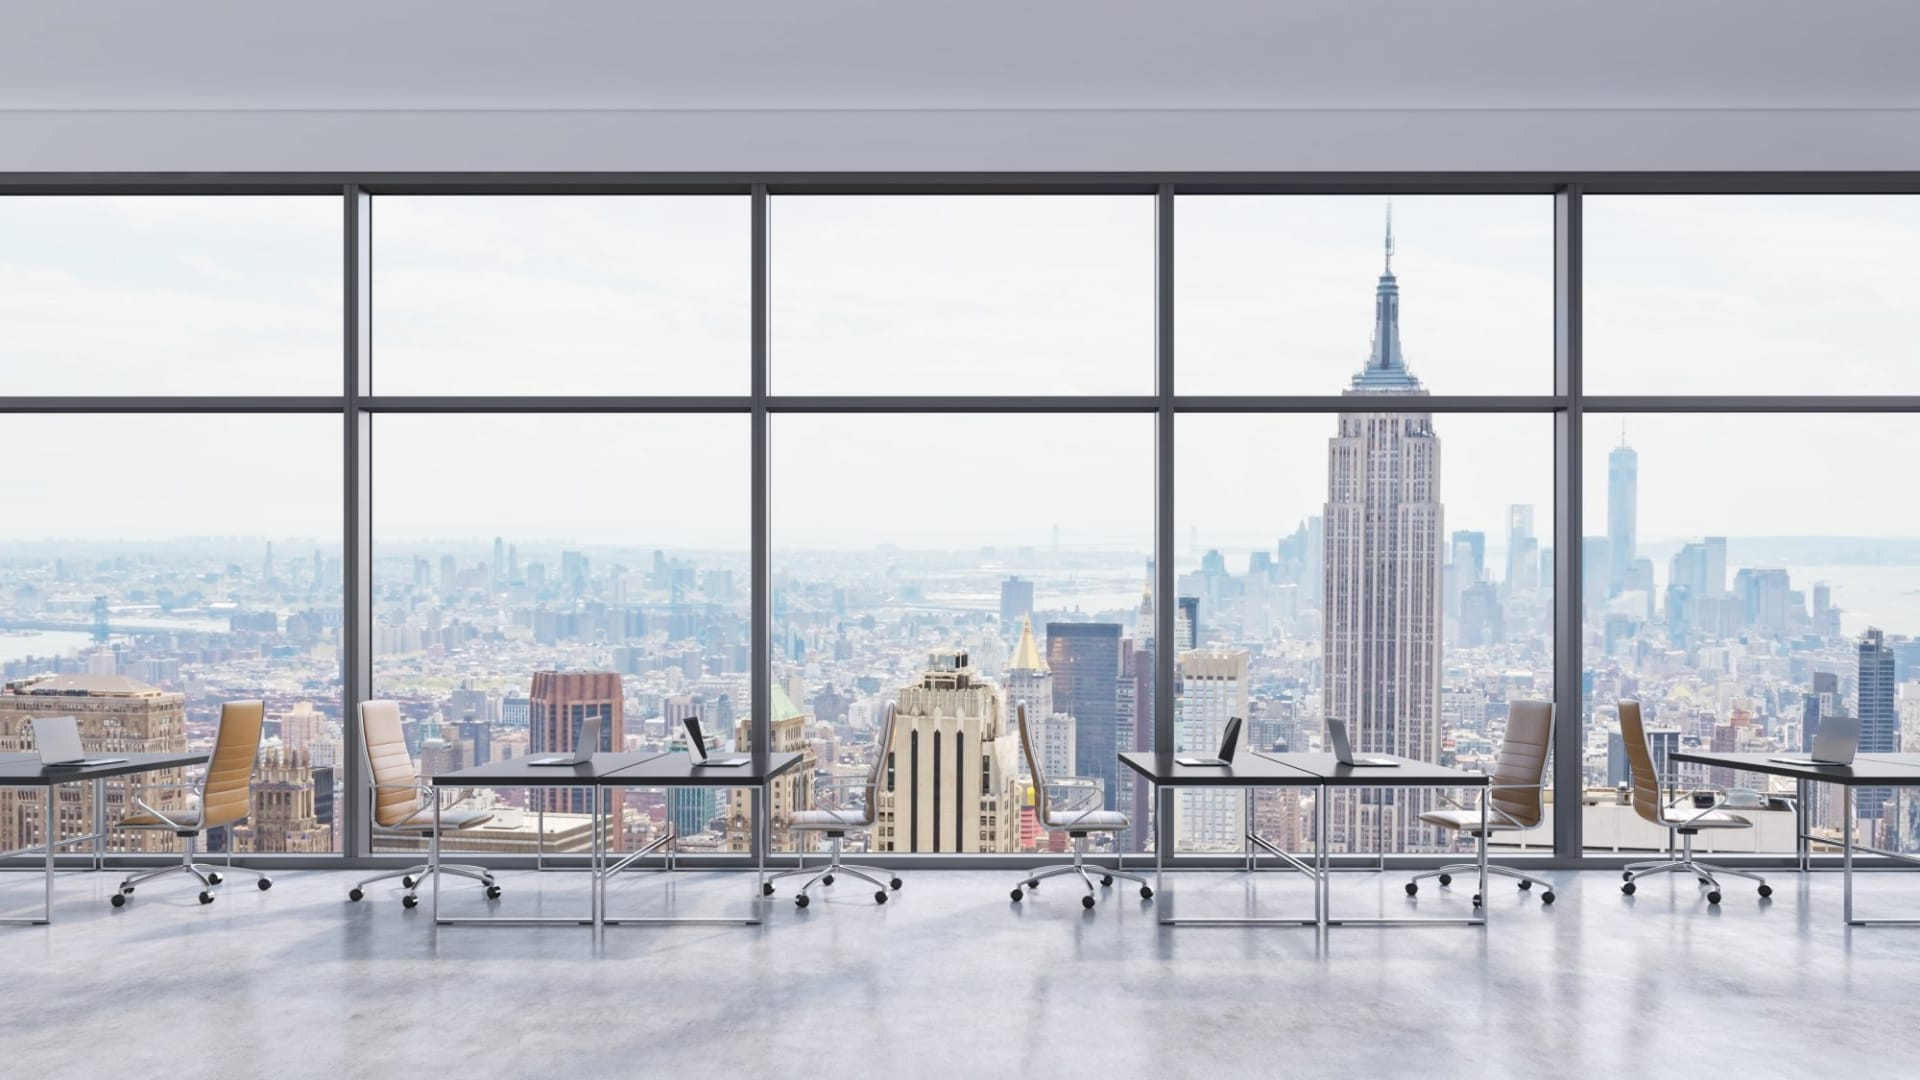 Adapt or Die: 5 Predictions for the Workplace of the Future